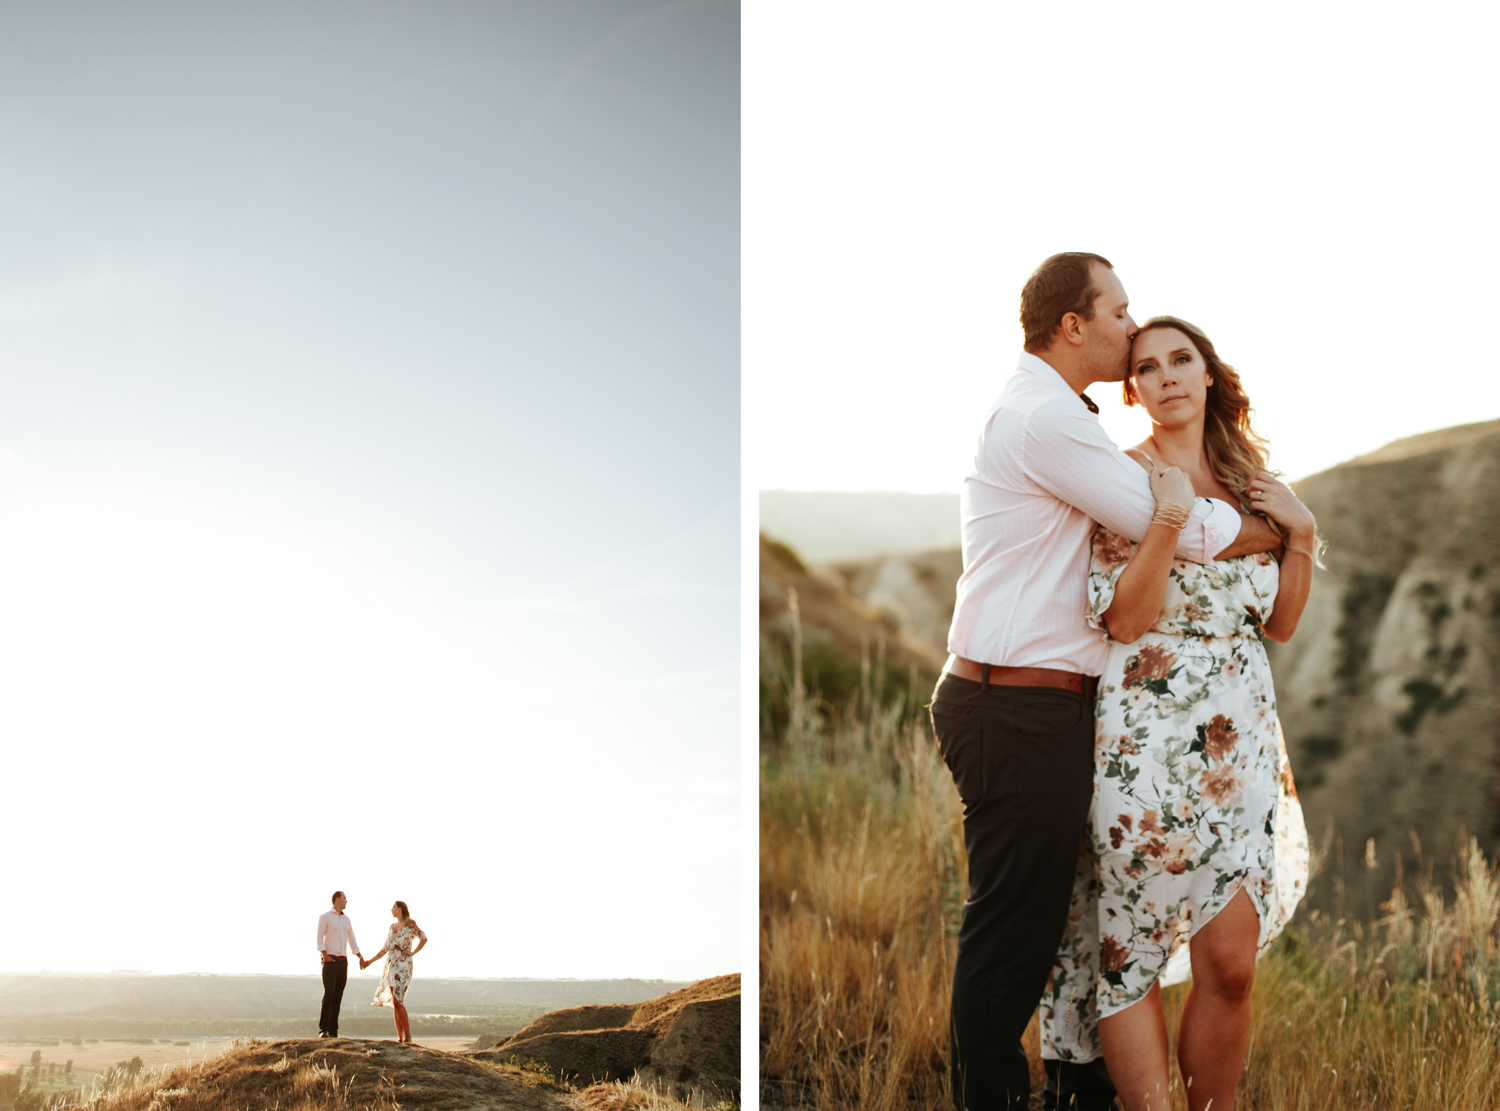 lethbridge-wedding-photographer-love-and-be-loved-photography-katie-kelli-engagement-picture-image-photo-50.jpg